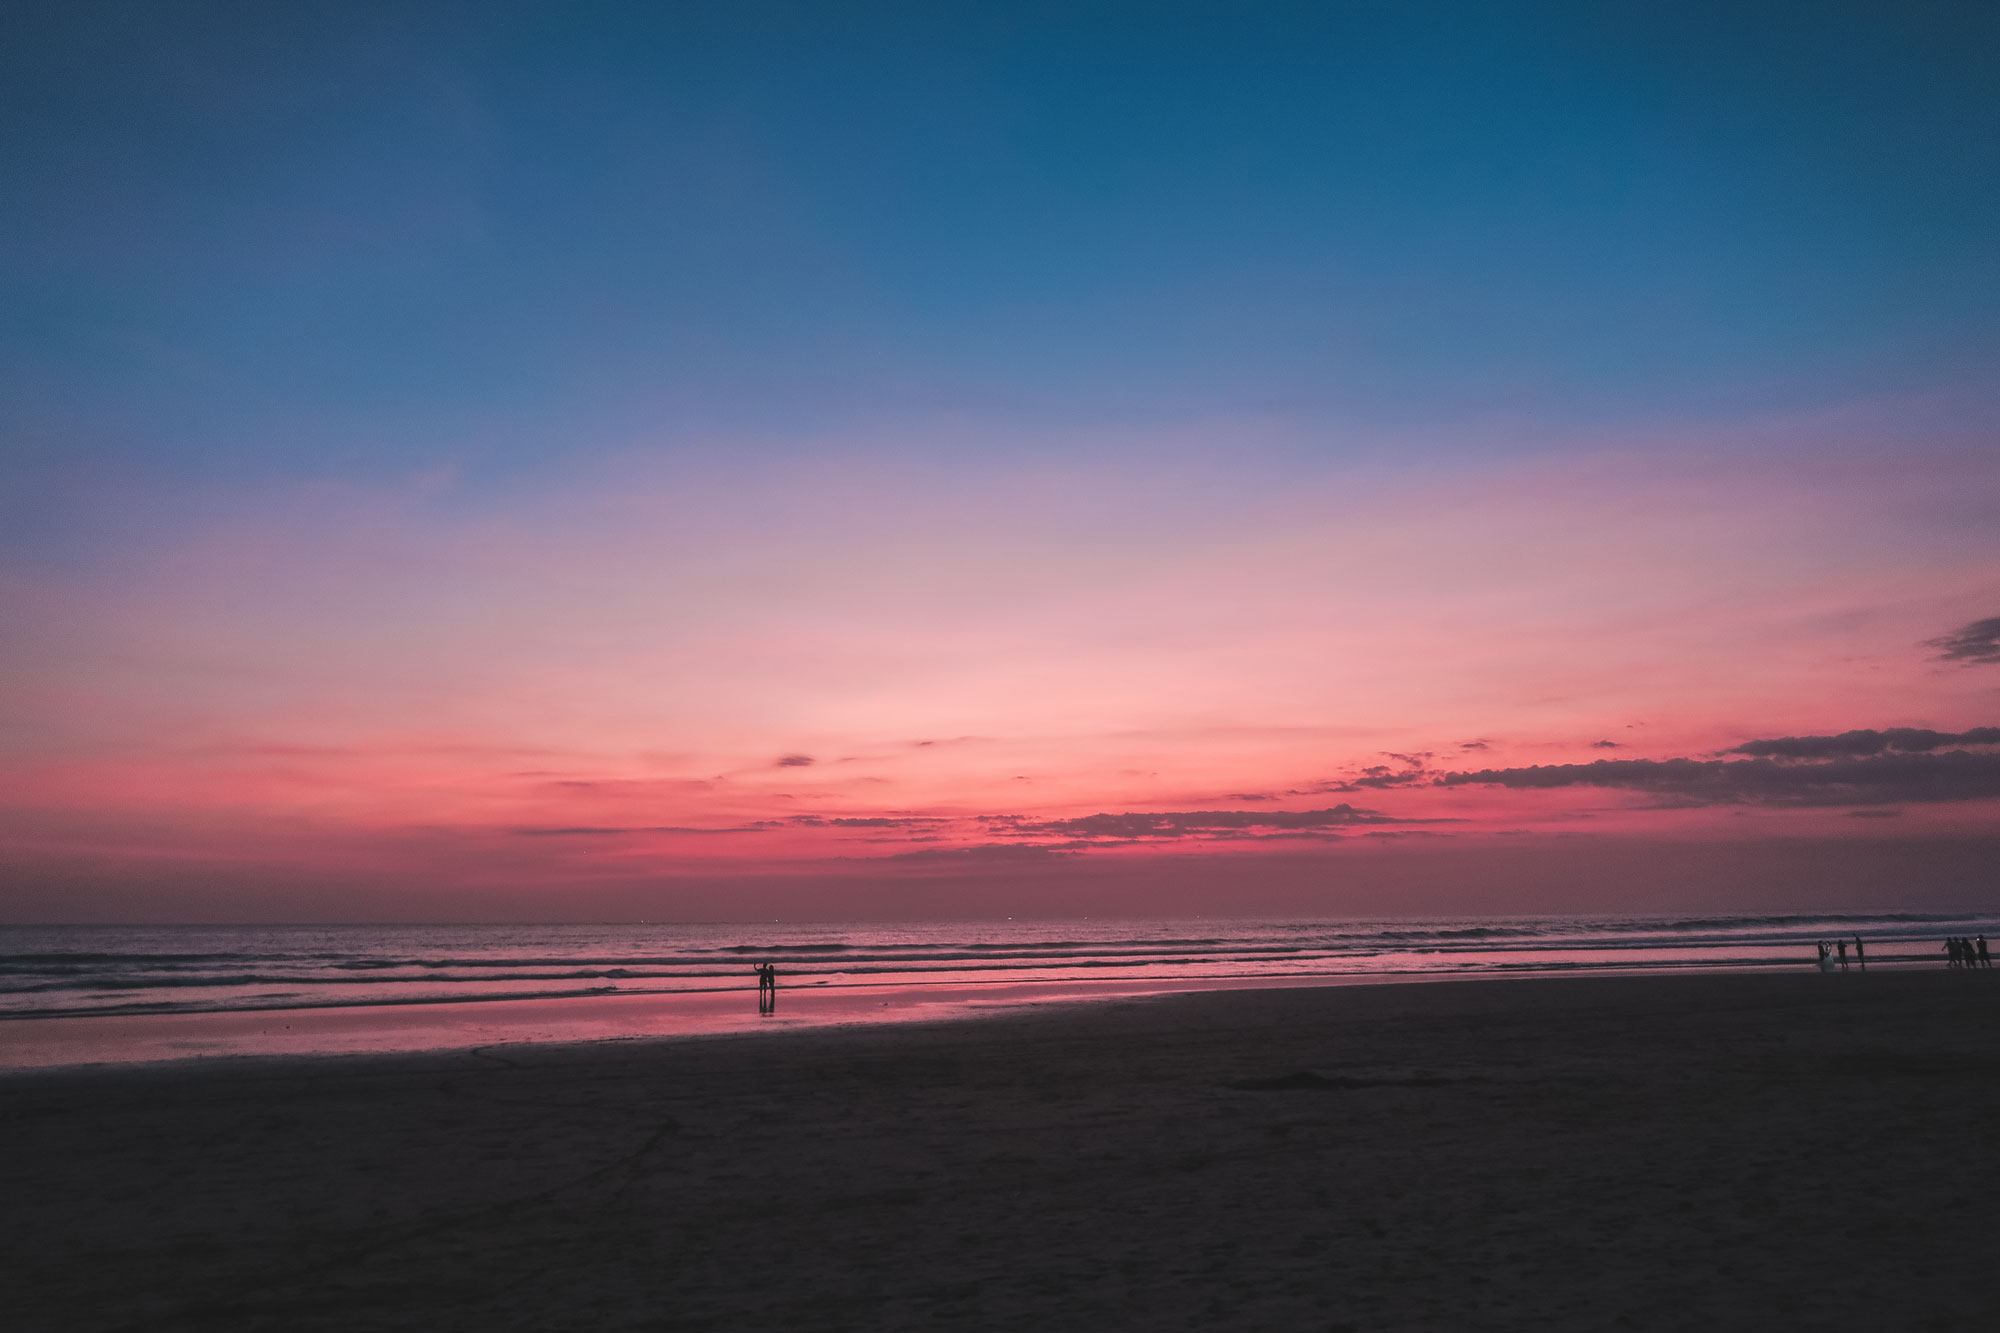 Sunset at Bali Beach